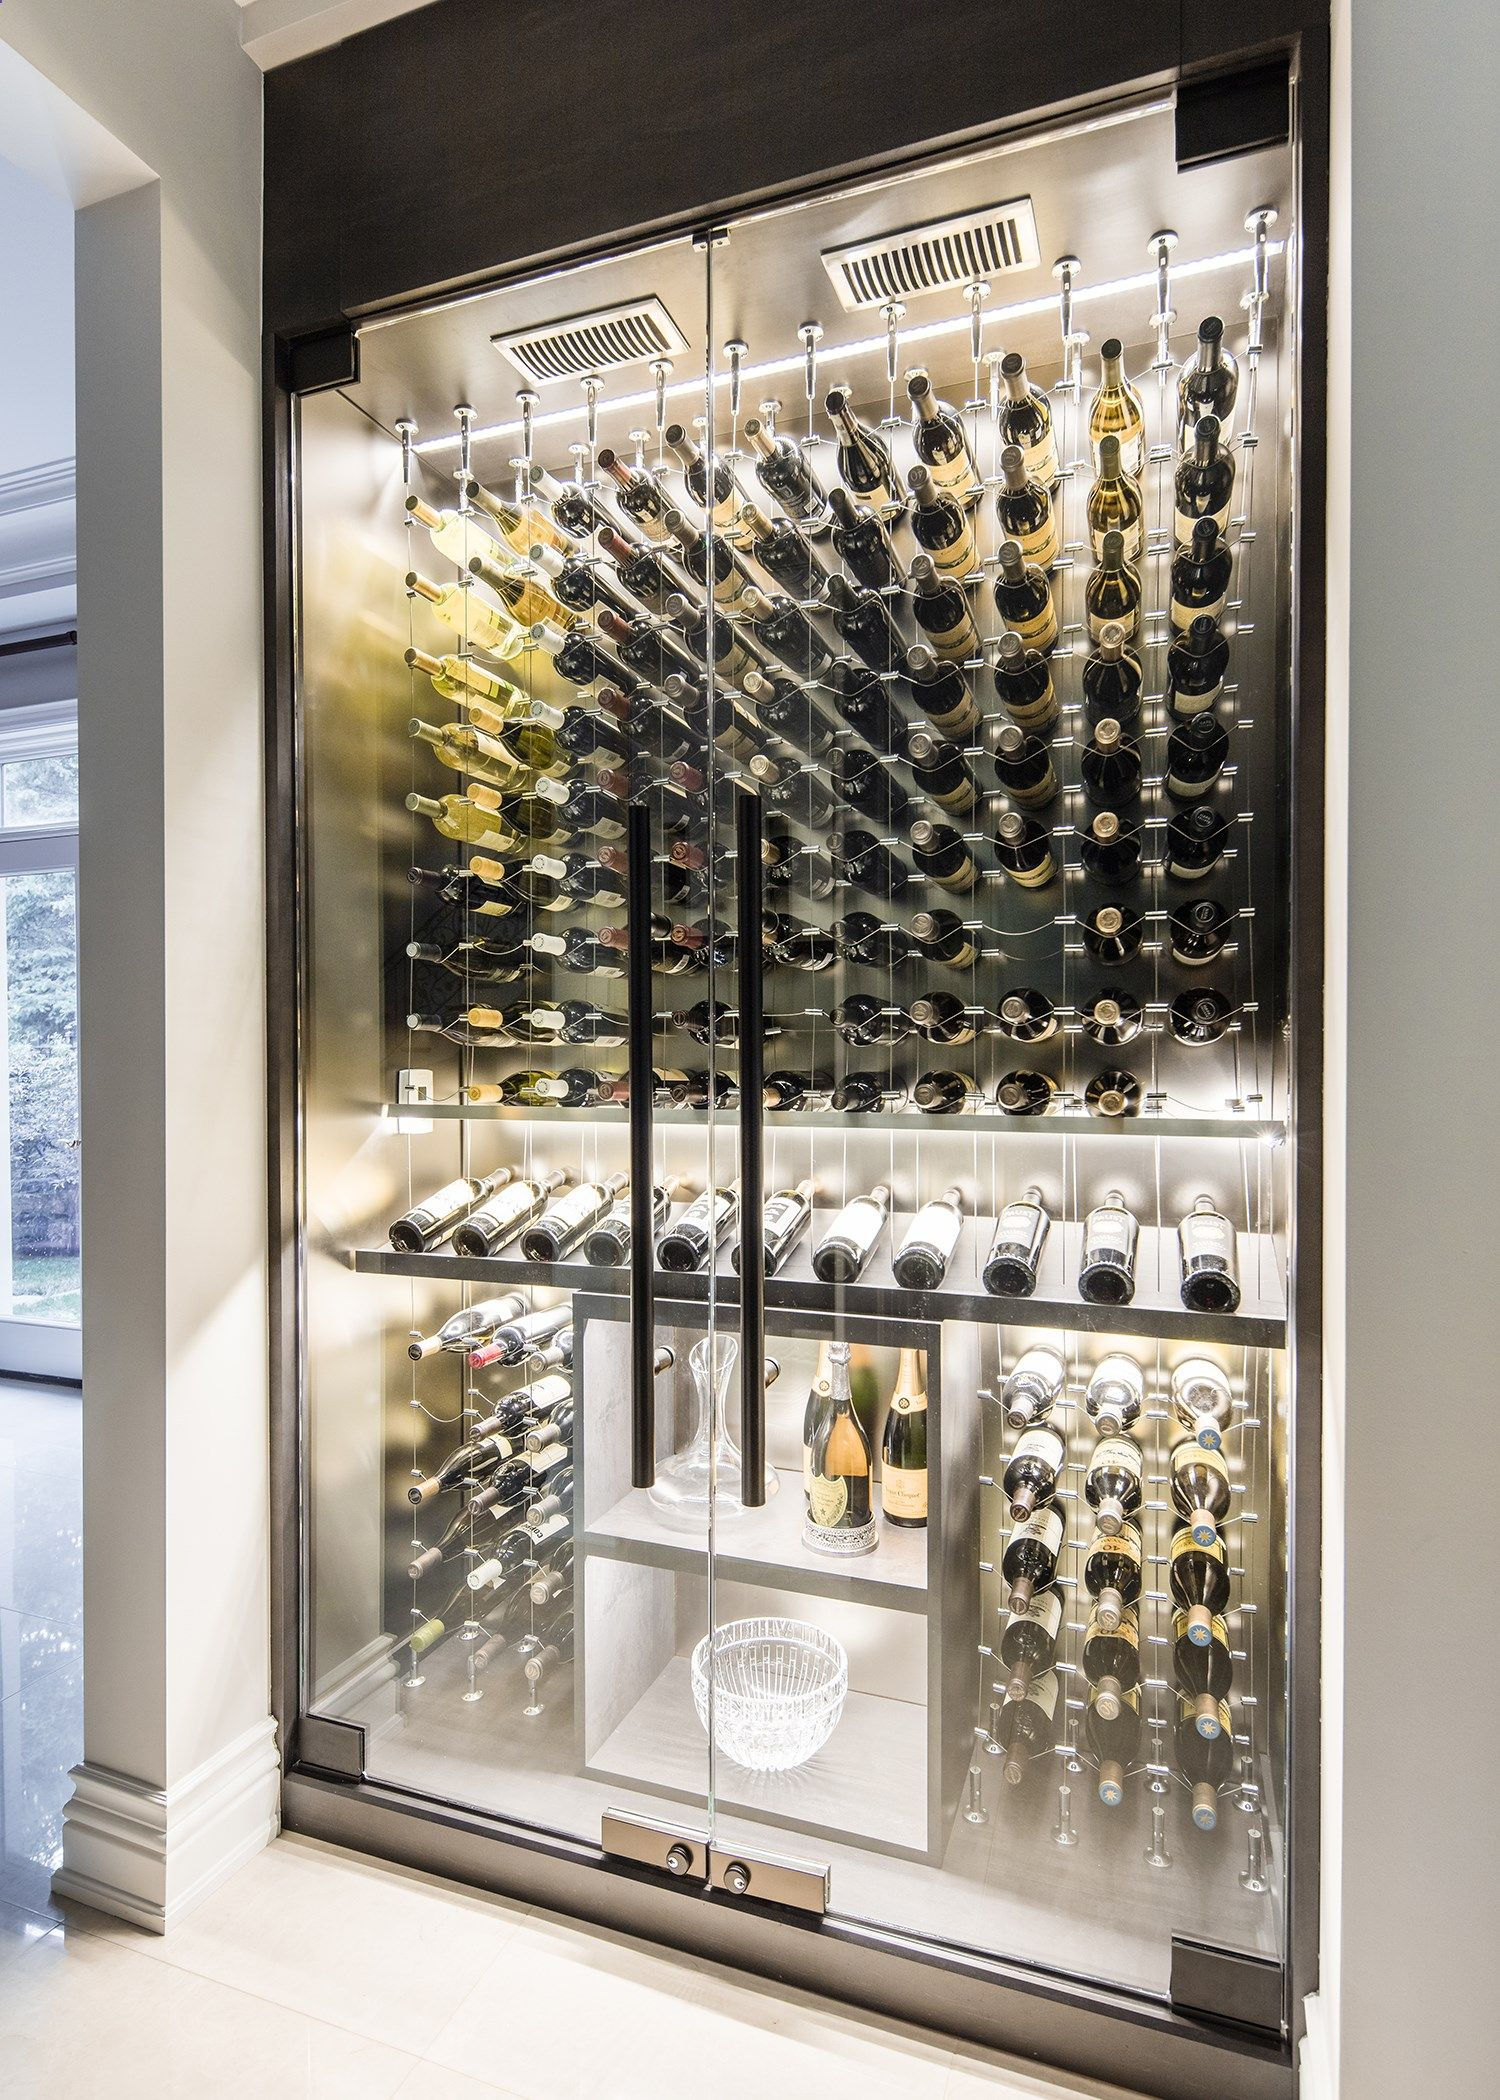 Top 5 Ways To Open A Bottle Of Wine Without A Corkscrew Home Wine Cellars Wine Cellar Design Glass Wine Cellar